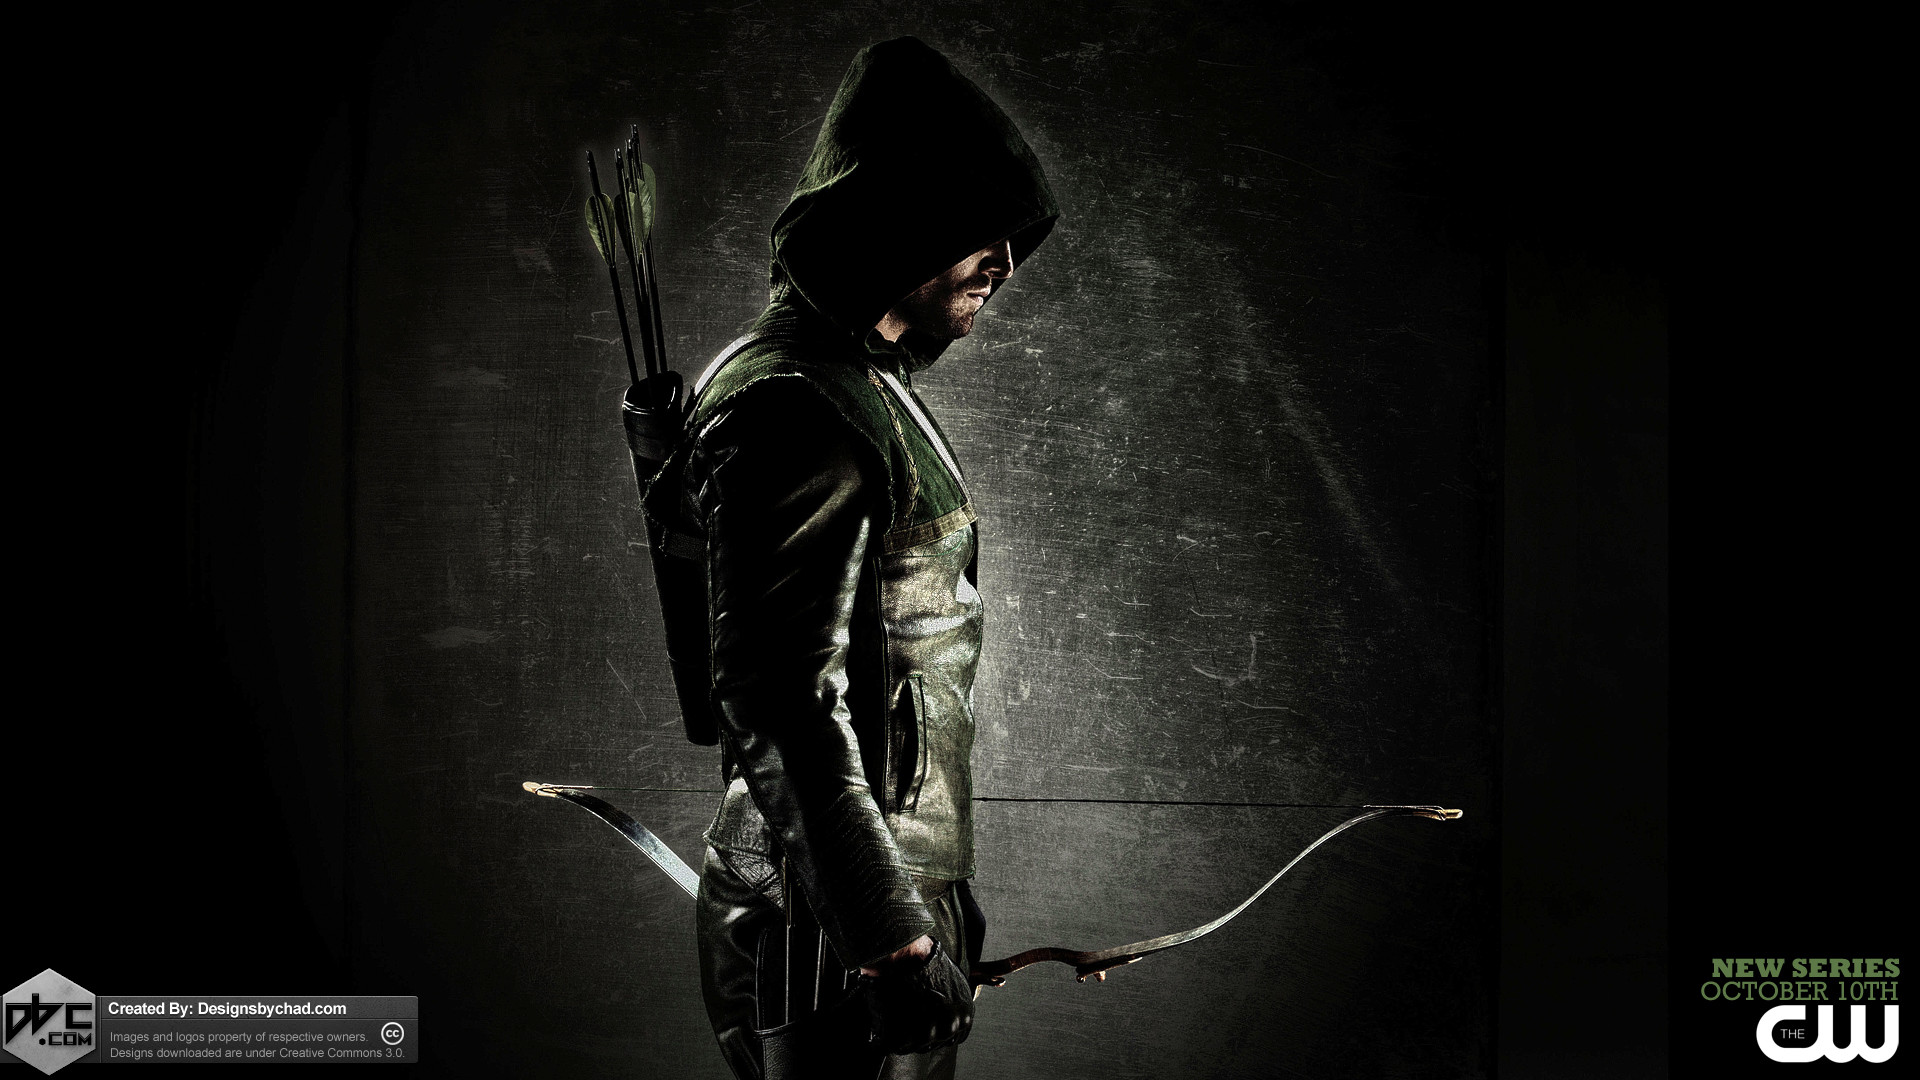 1920x1080 wallpaper other hd wallpaper for the cw s new series arrow load all .